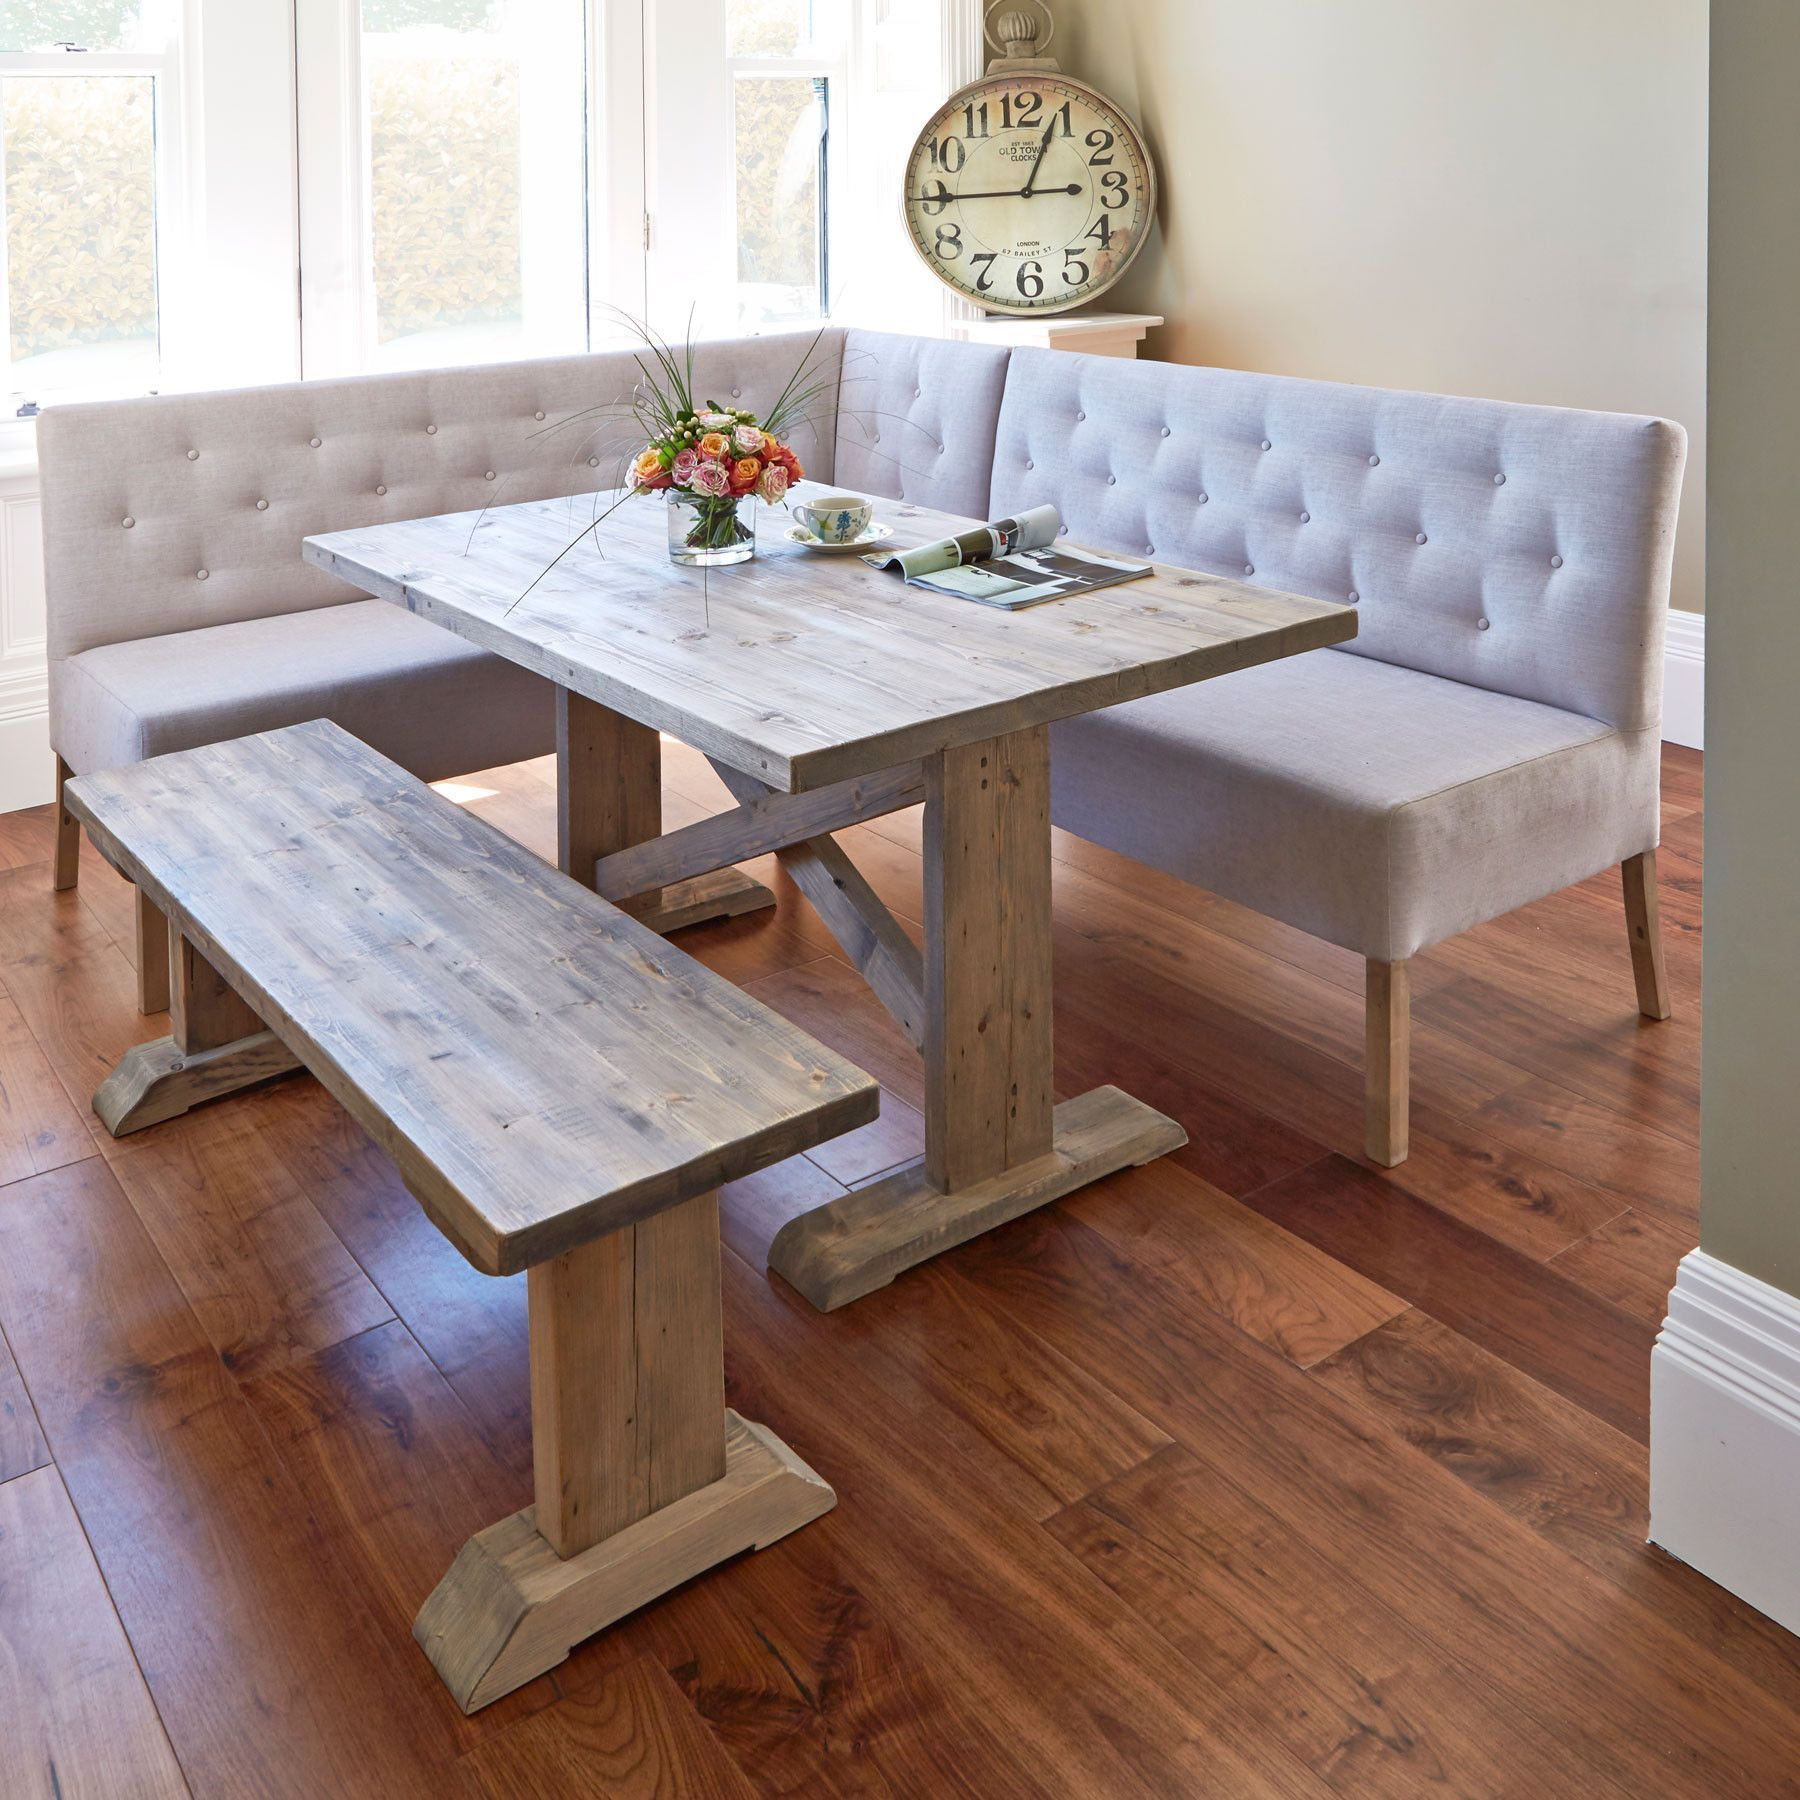 35 Best Small Kitchen Table Pictures Ideas Designs